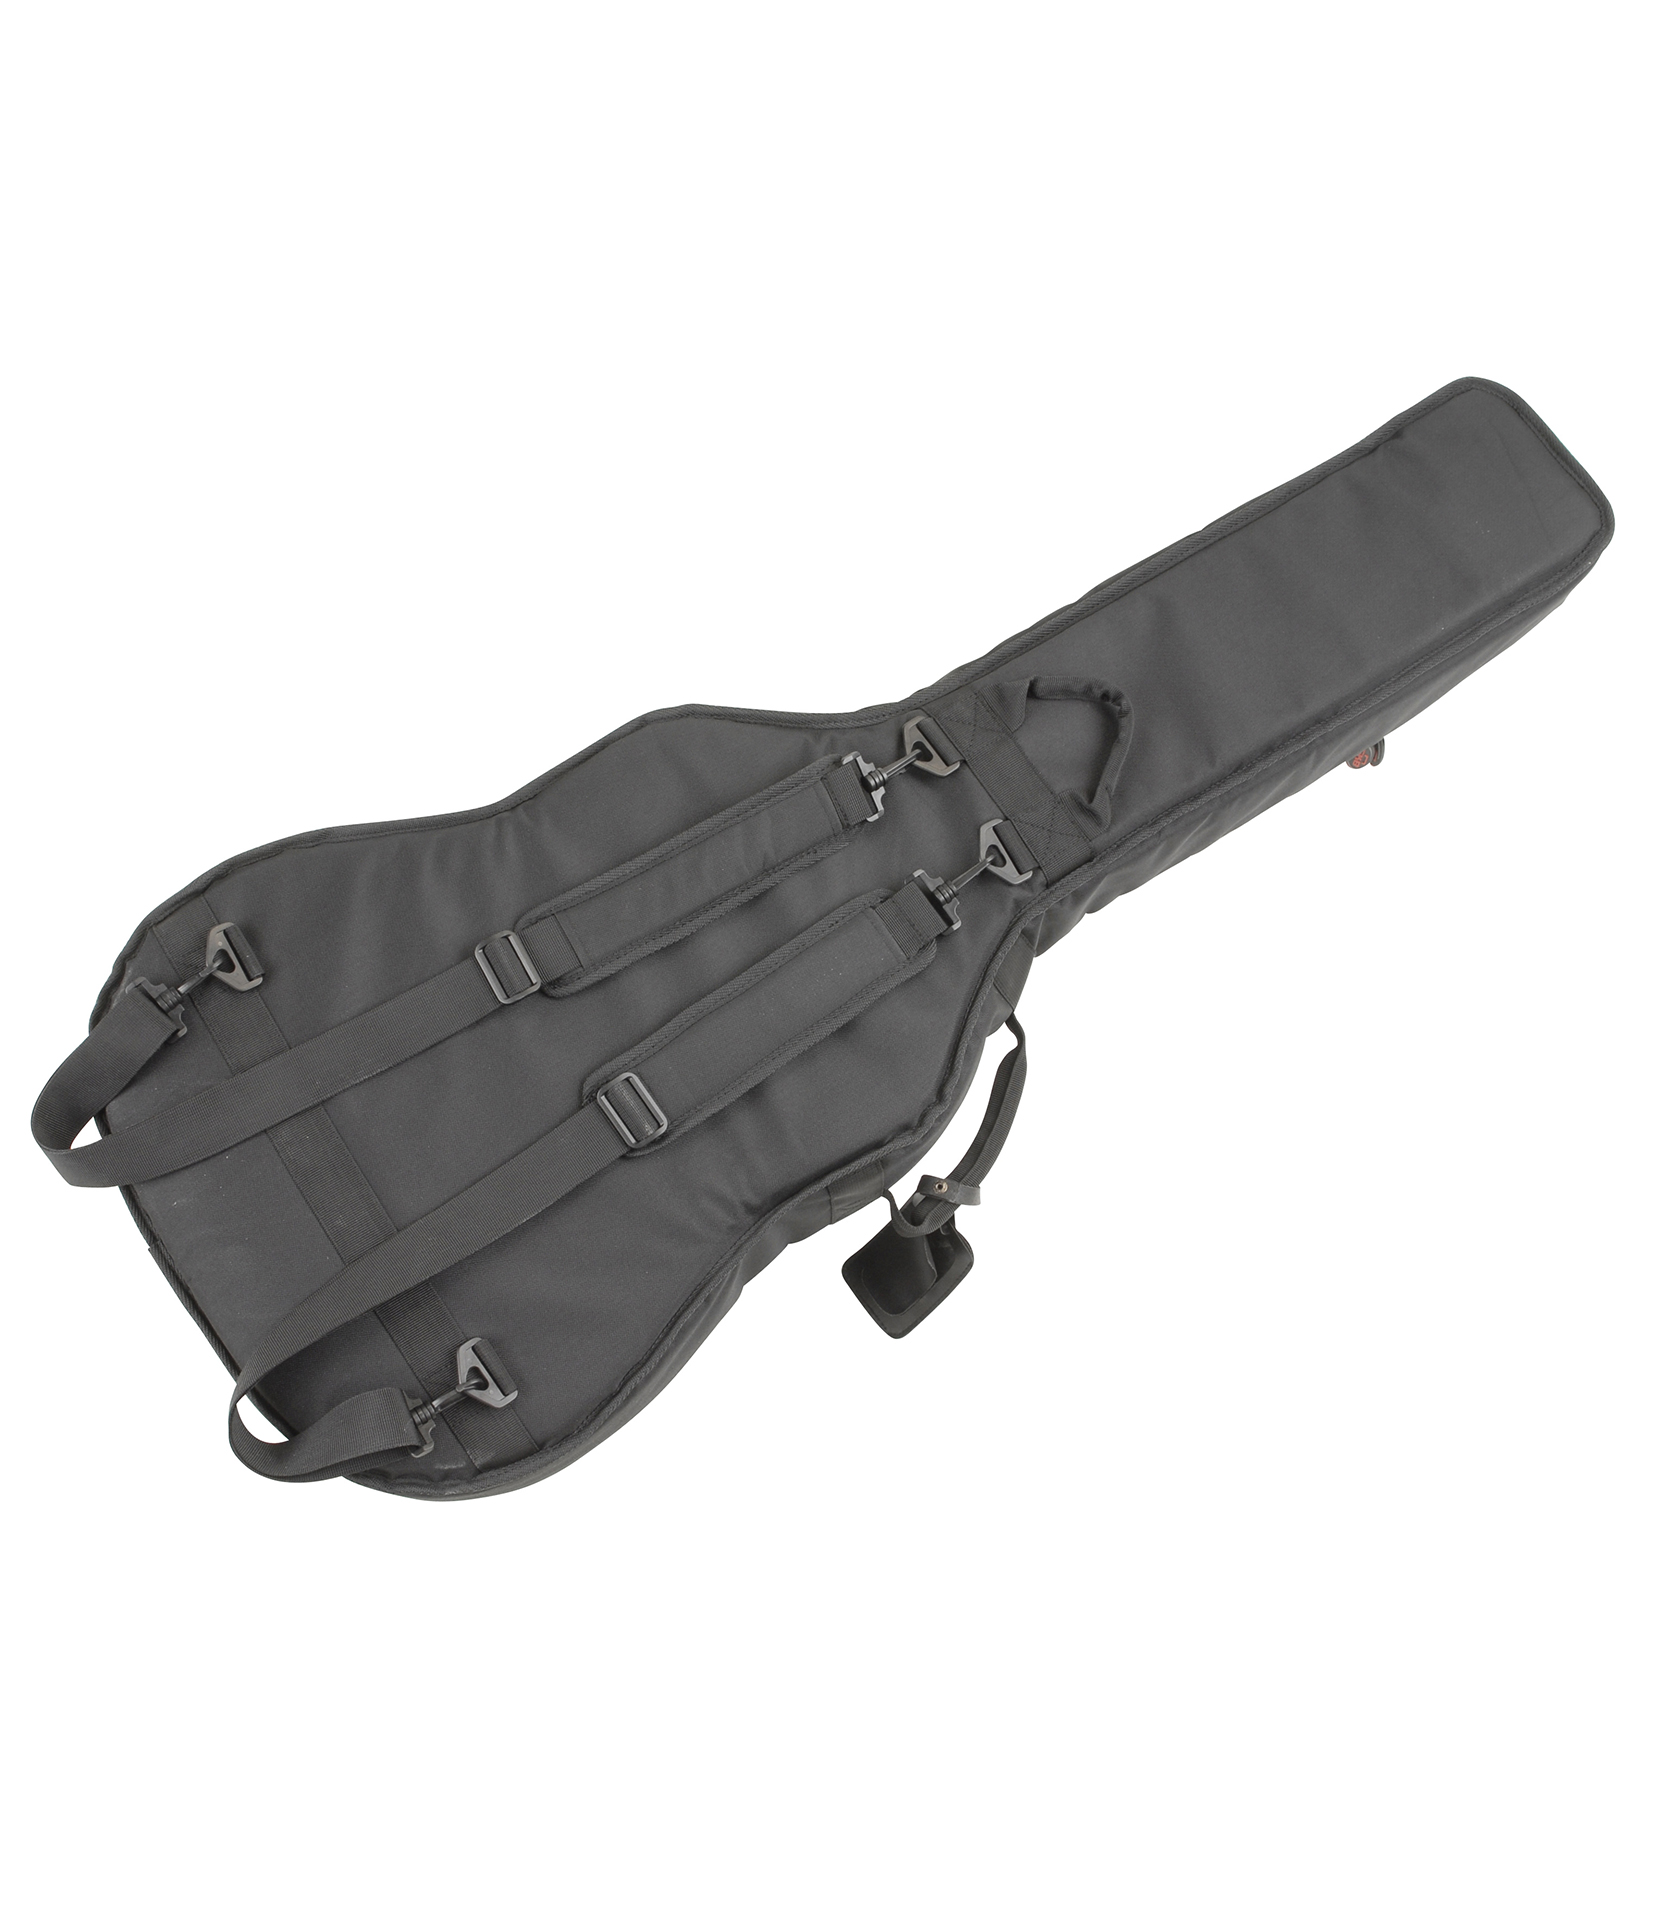 skb - 1SKB-GB18 - Melody House Musical Instruments